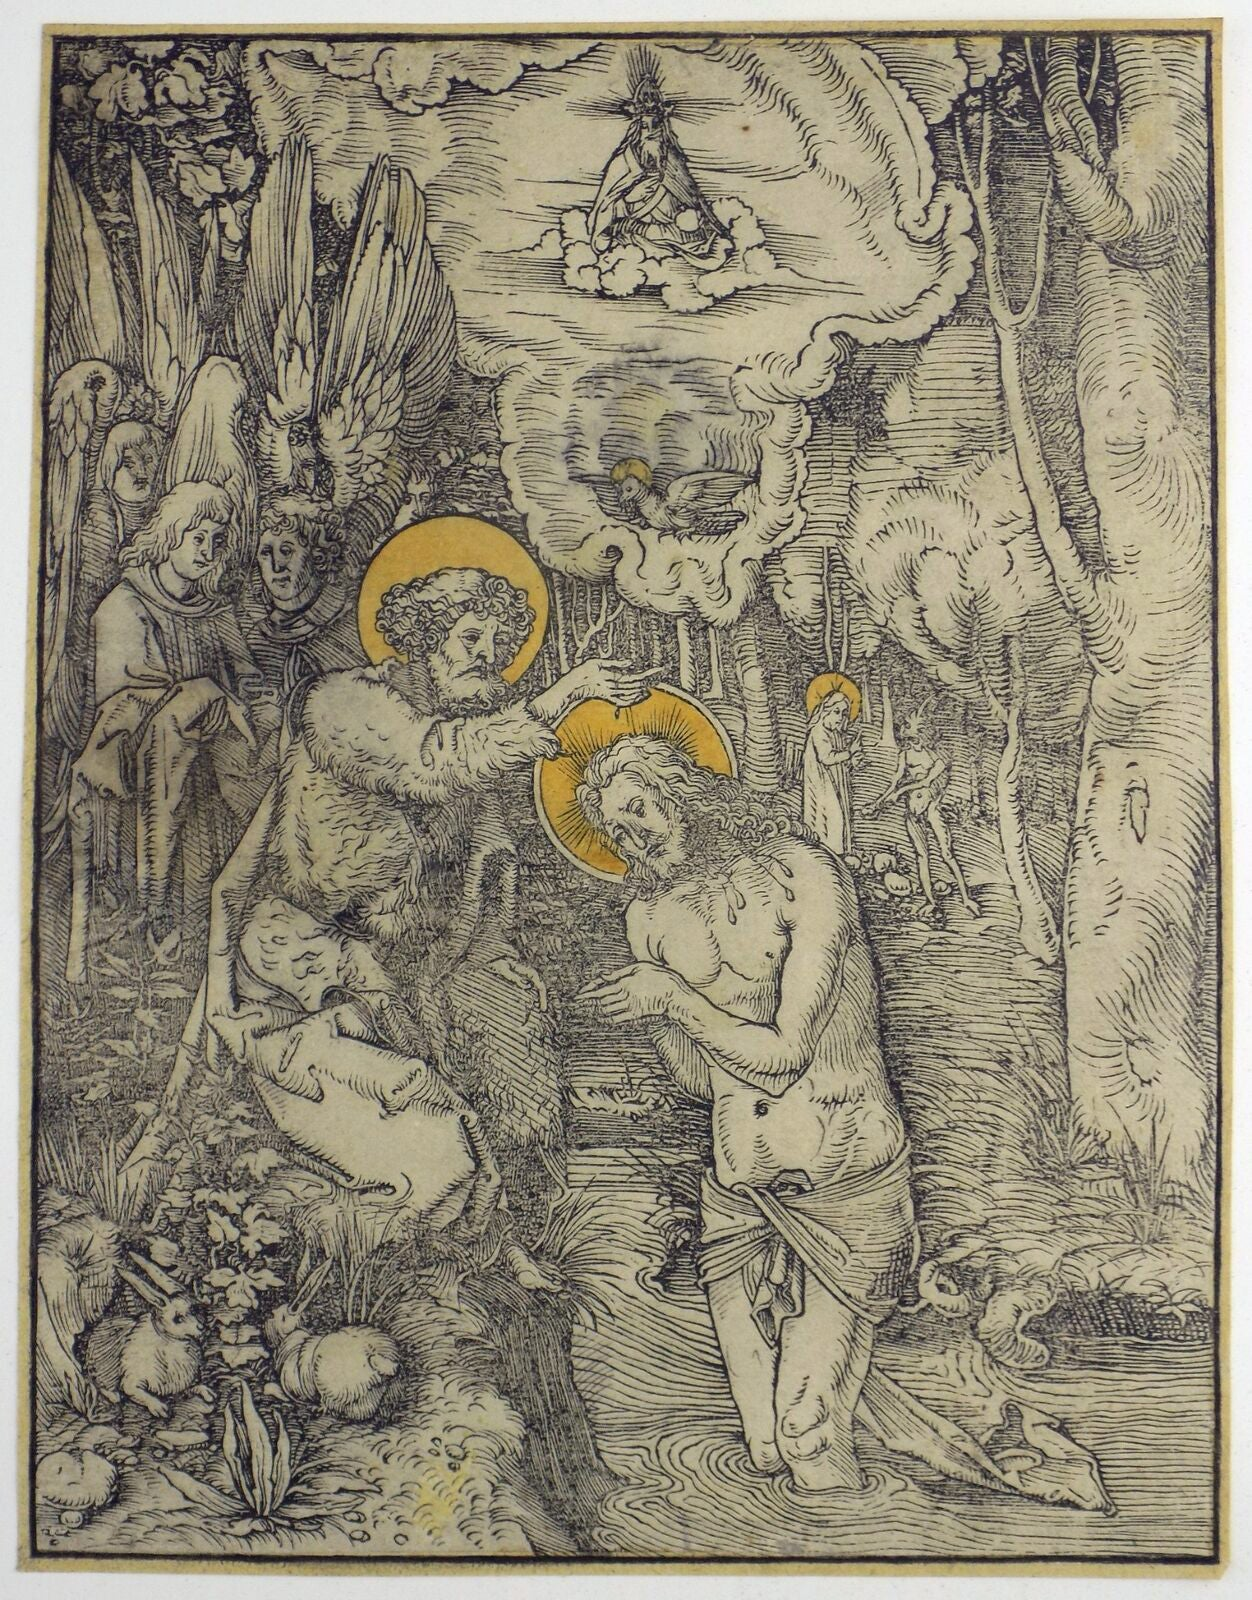 Image of German Old Master Print of the Baptism of Christ by Hans Wechtlin